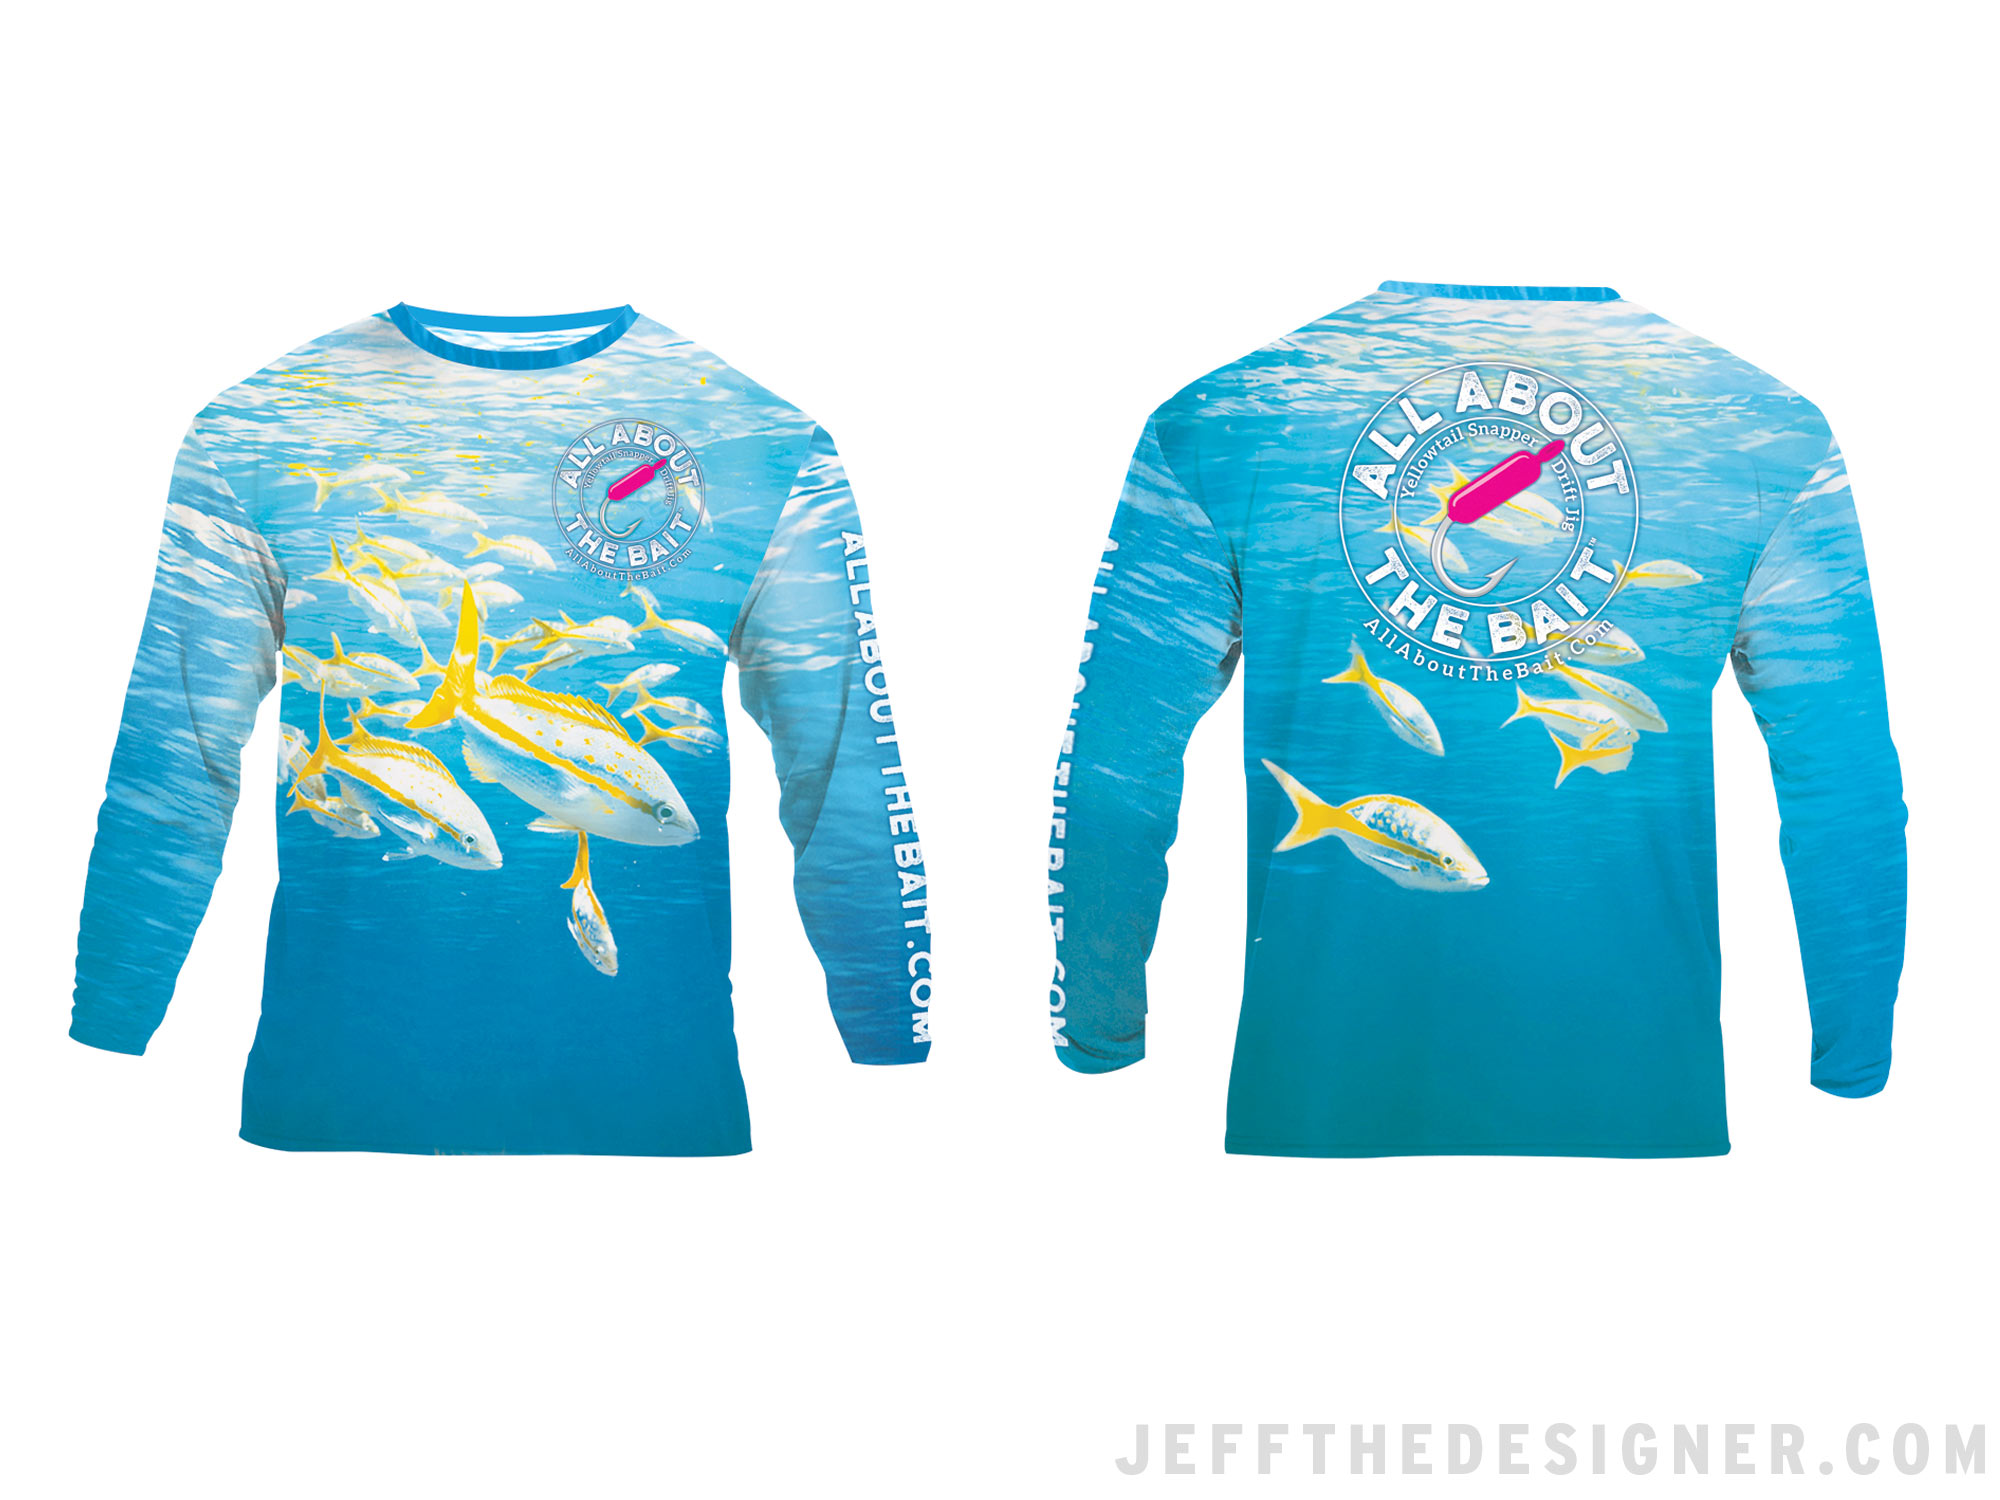 Fishing Shirt Design - Yellowtail Snapper Drift Jig